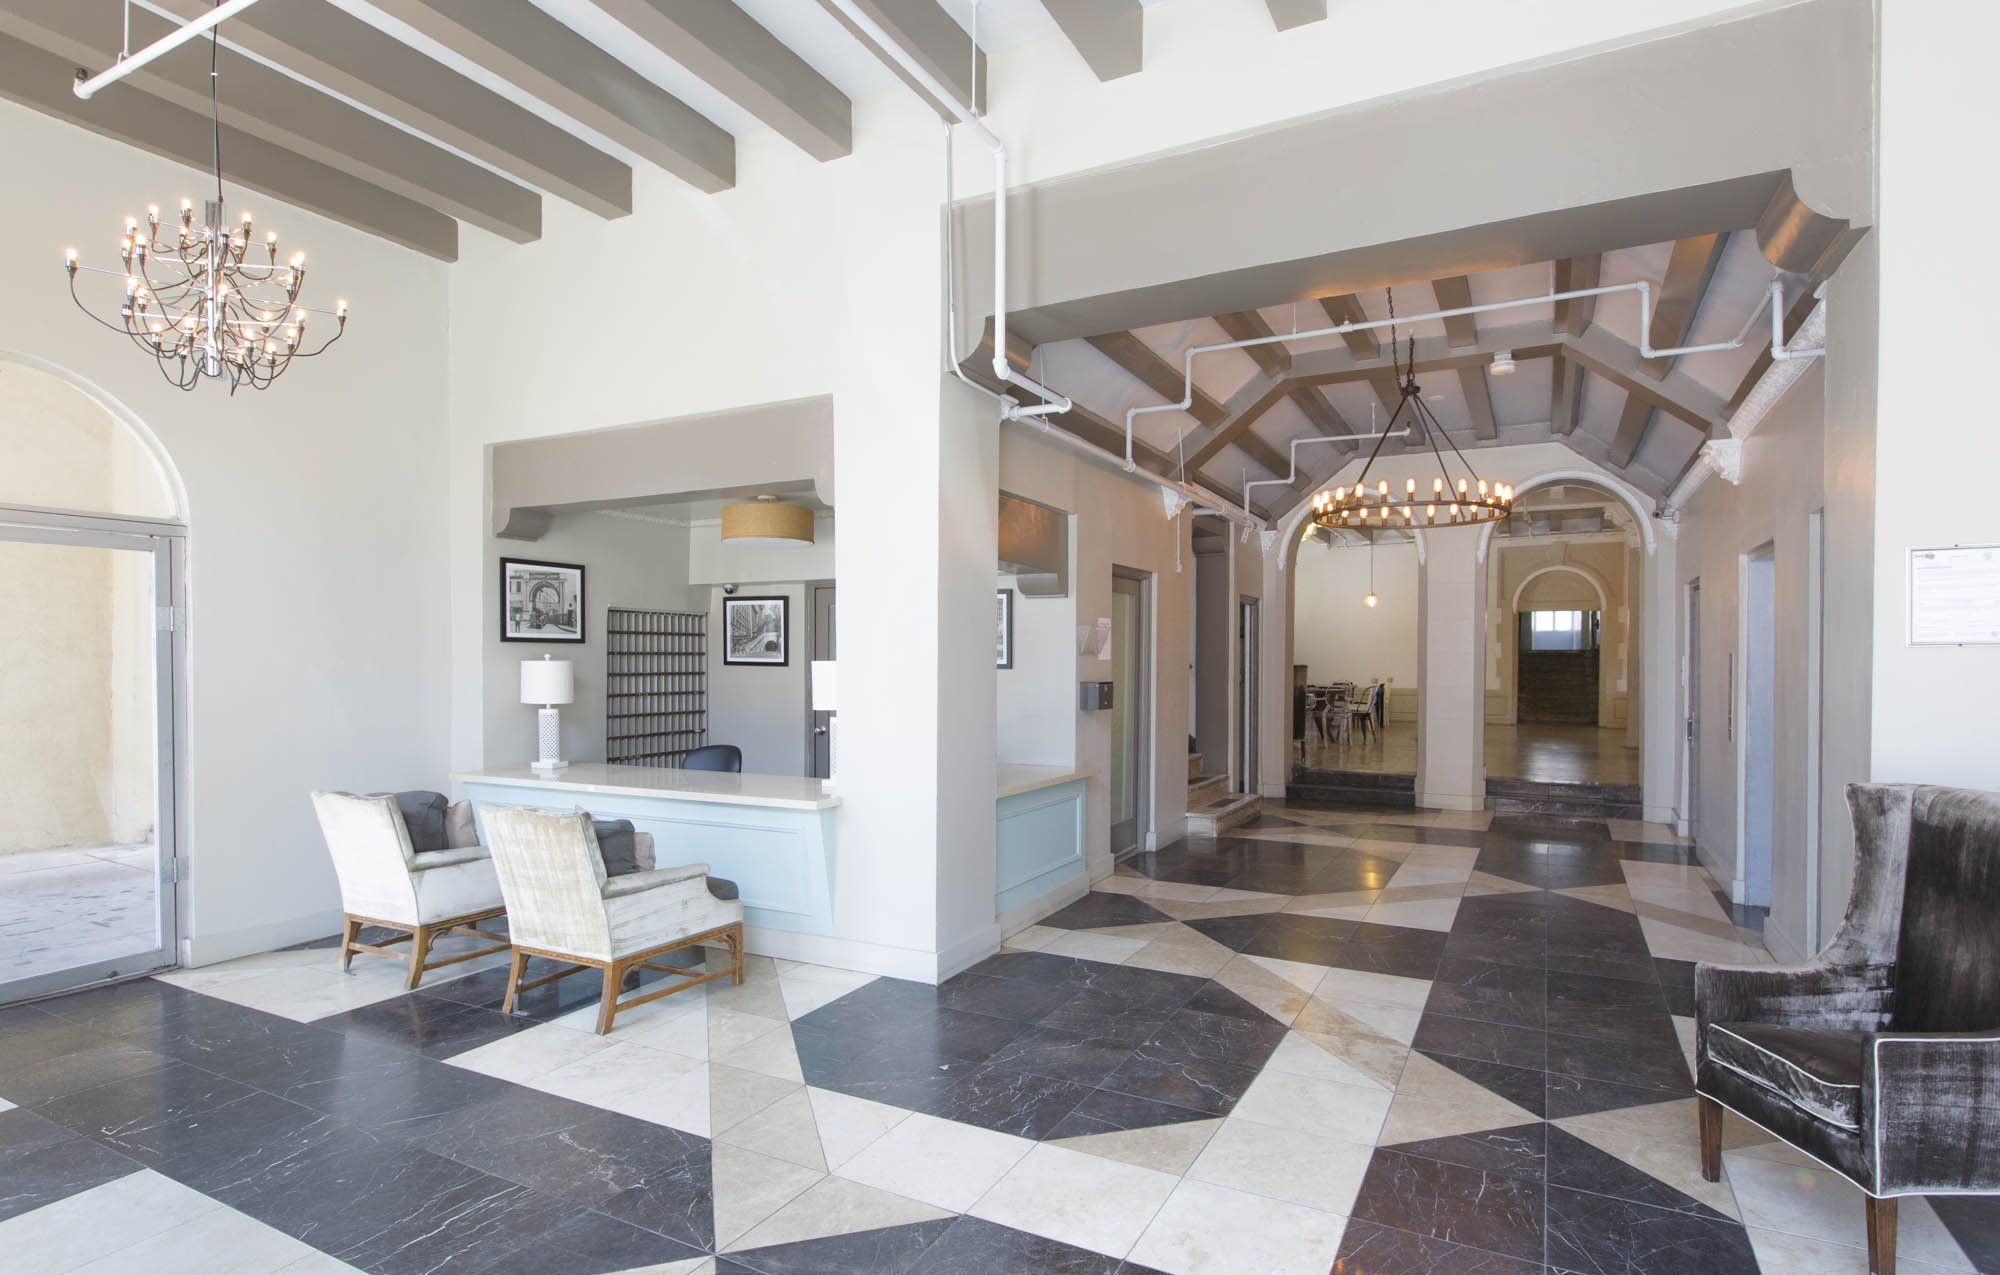 Community lobby at Guardian Arms Apartments in Los Angeles, CA 90027